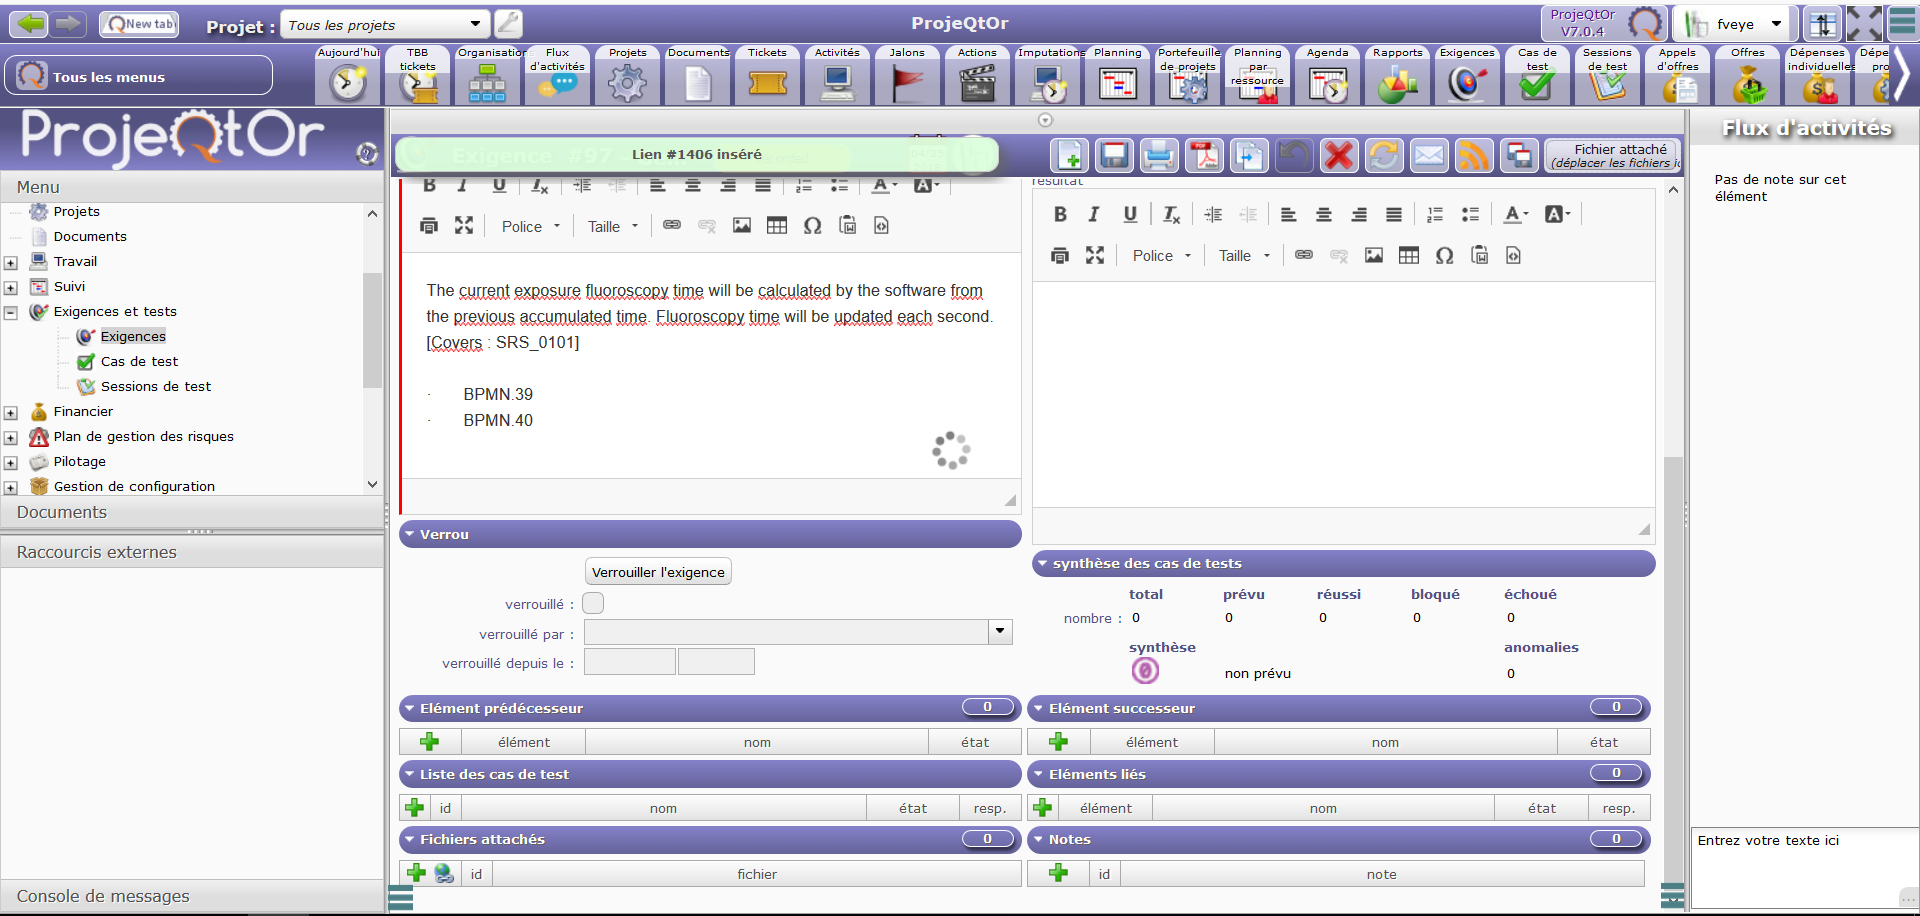 ProjeQtOr free project management software - [SOLVED